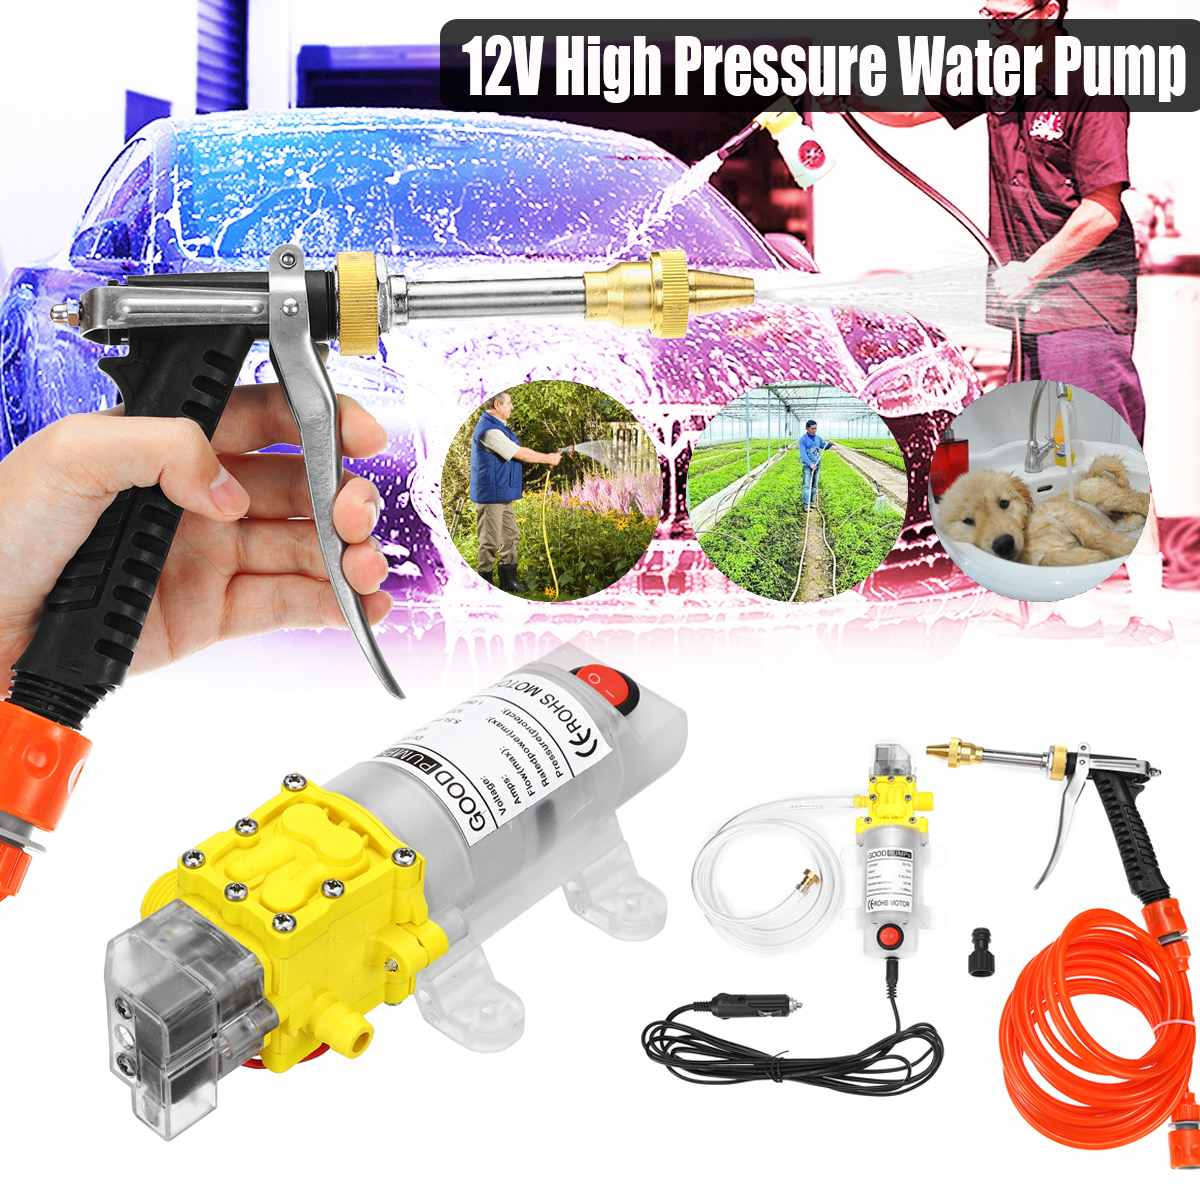 12V High Pressure Diaphragm Self Priming Water Pump 5-7Lpm 120W Water Sprayer Car Wash 12 V Electric Water Pump